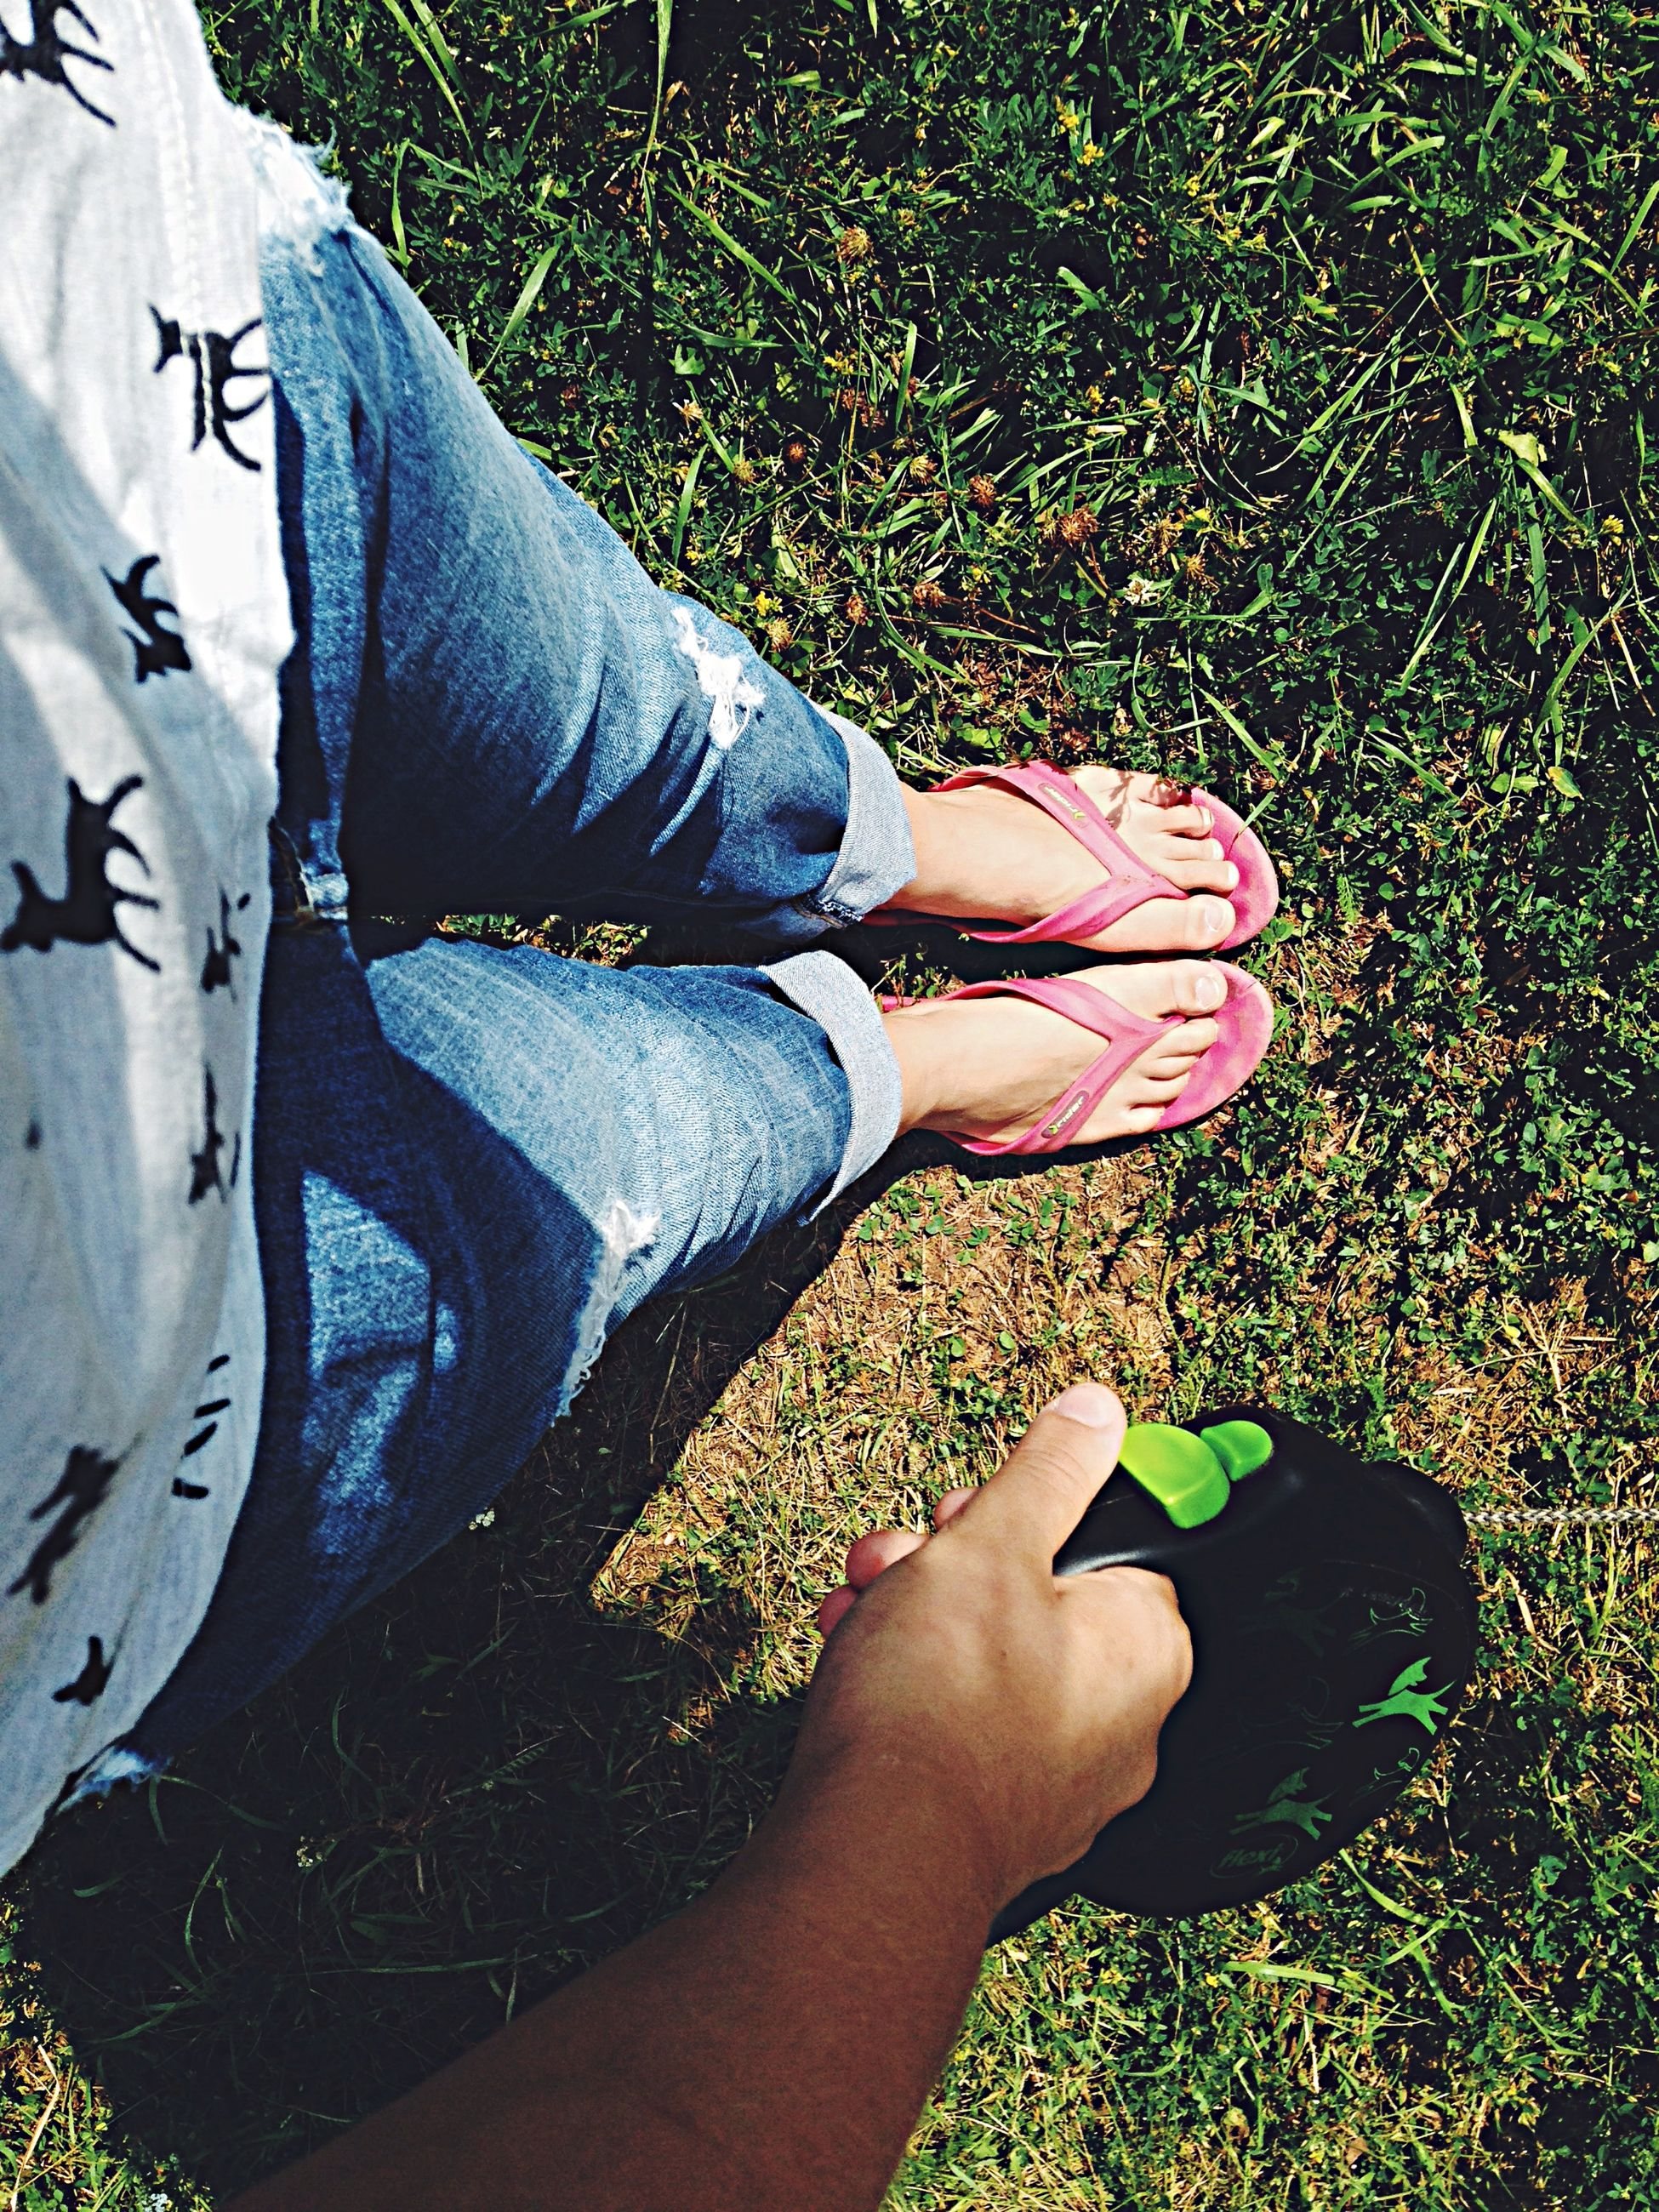 low section, person, lifestyles, leisure activity, shoe, personal perspective, casual clothing, standing, grass, high angle view, human foot, young women, footwear, barefoot, relaxation, legs crossed at ankle